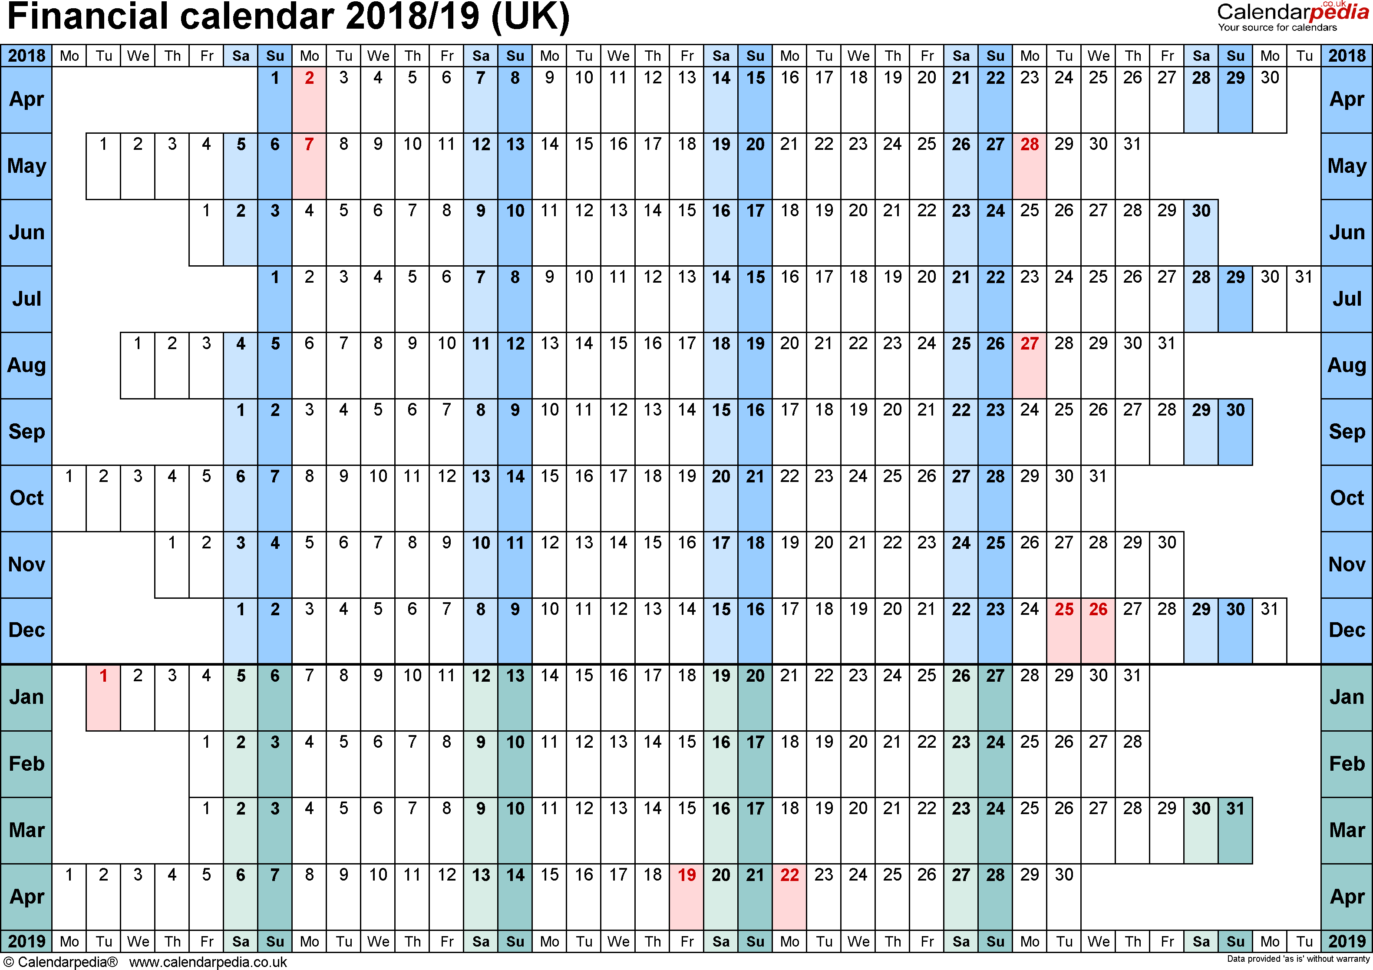 Uk Tax Calculator Excel Spreadsheet 2018 In Financial Calendars 2018/19 Uk In Microsoft Excel Format